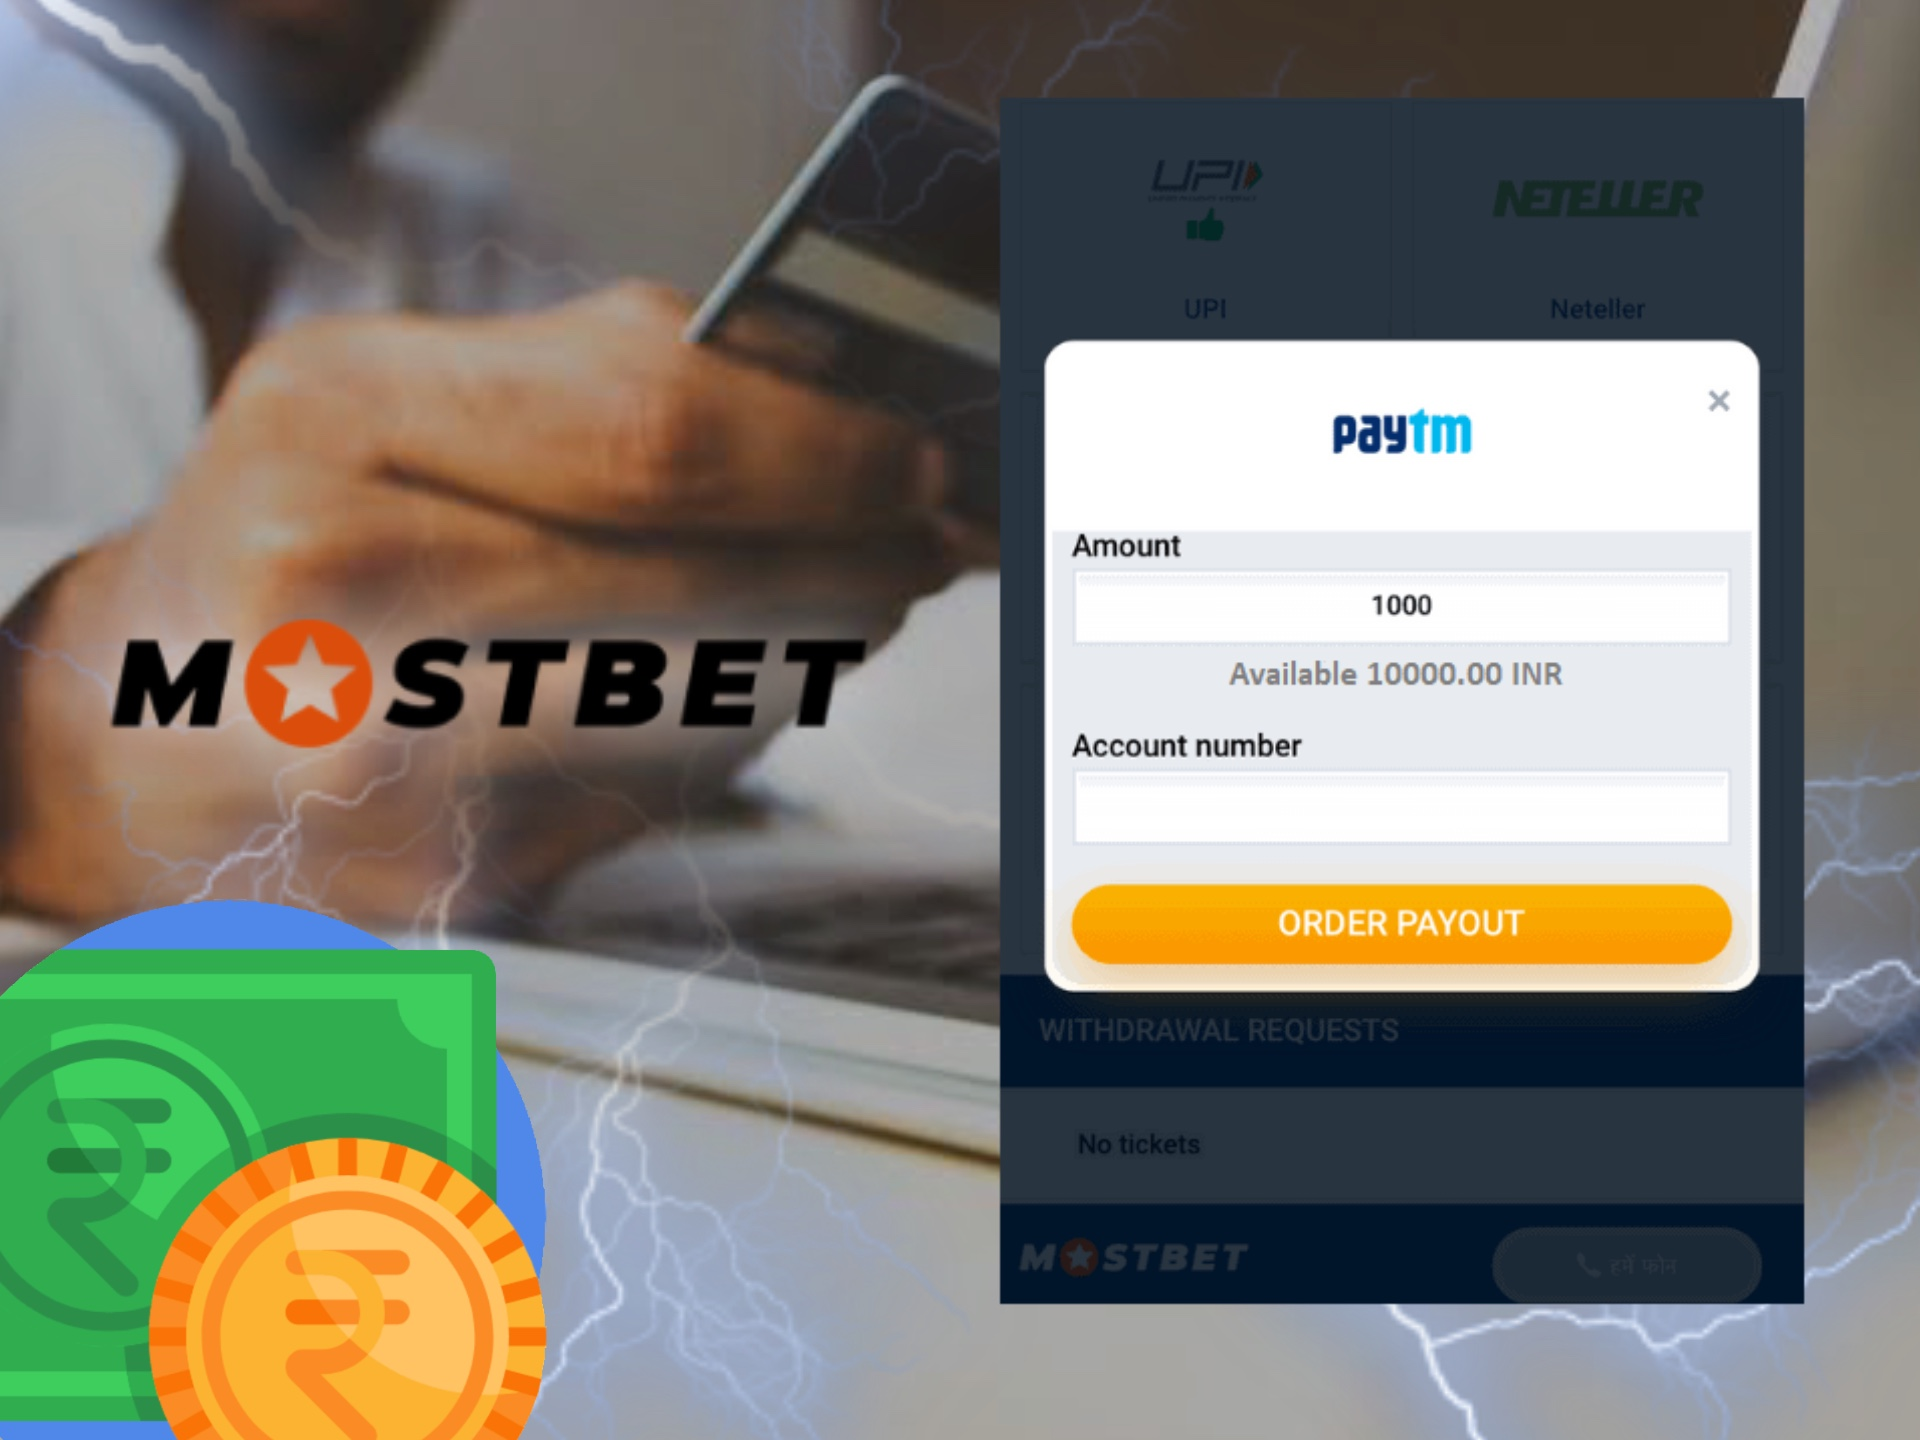 Pay attention, that a withdrawal from Mostbet can take some time.